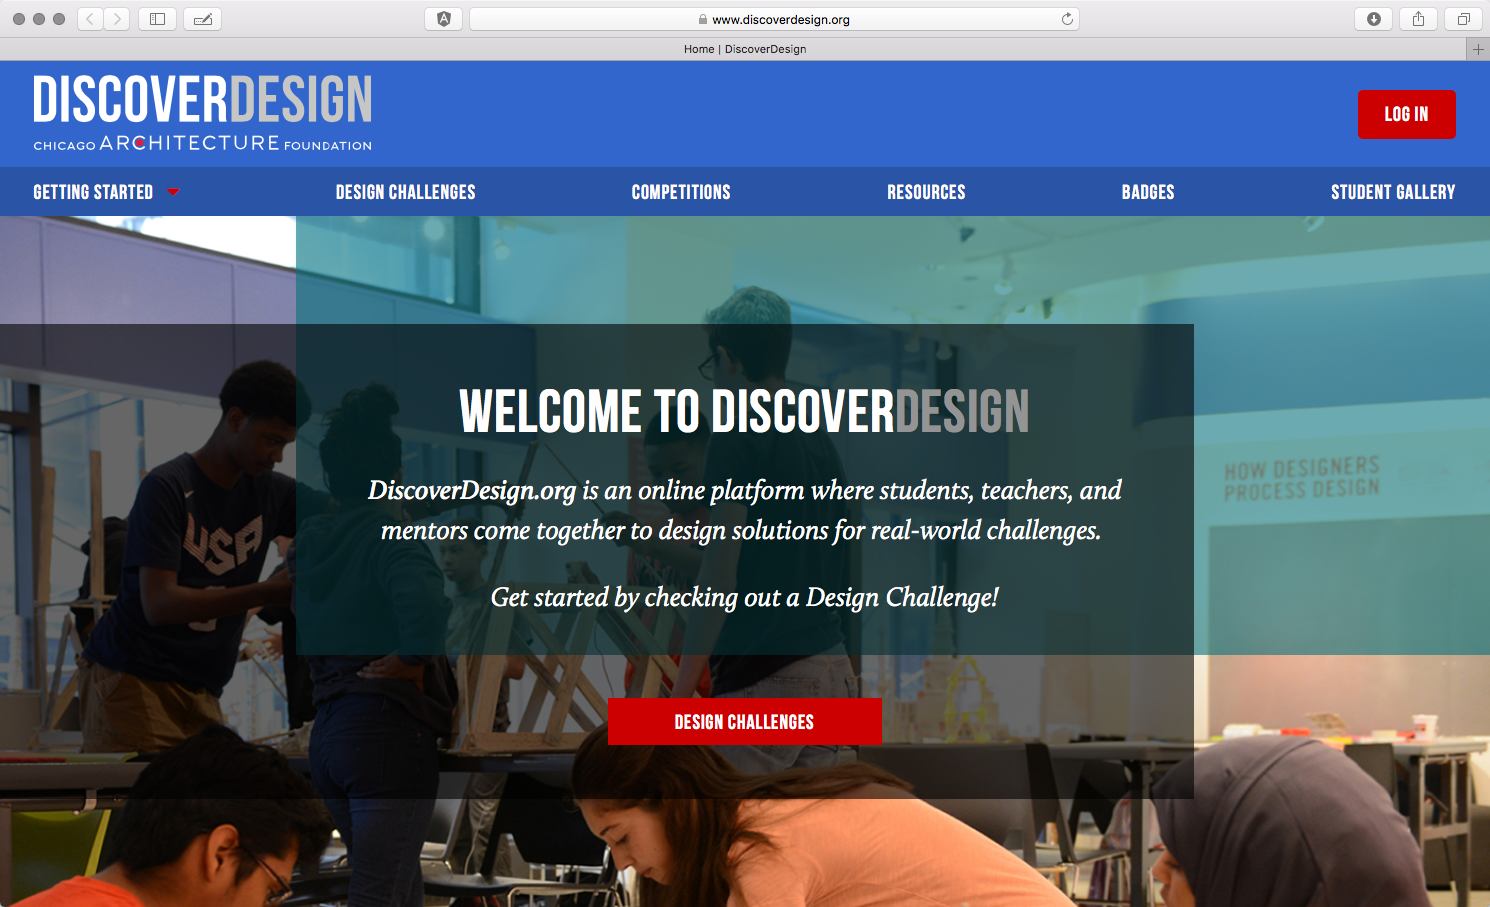 Screenshot of homepage for DiscoverDesign.org